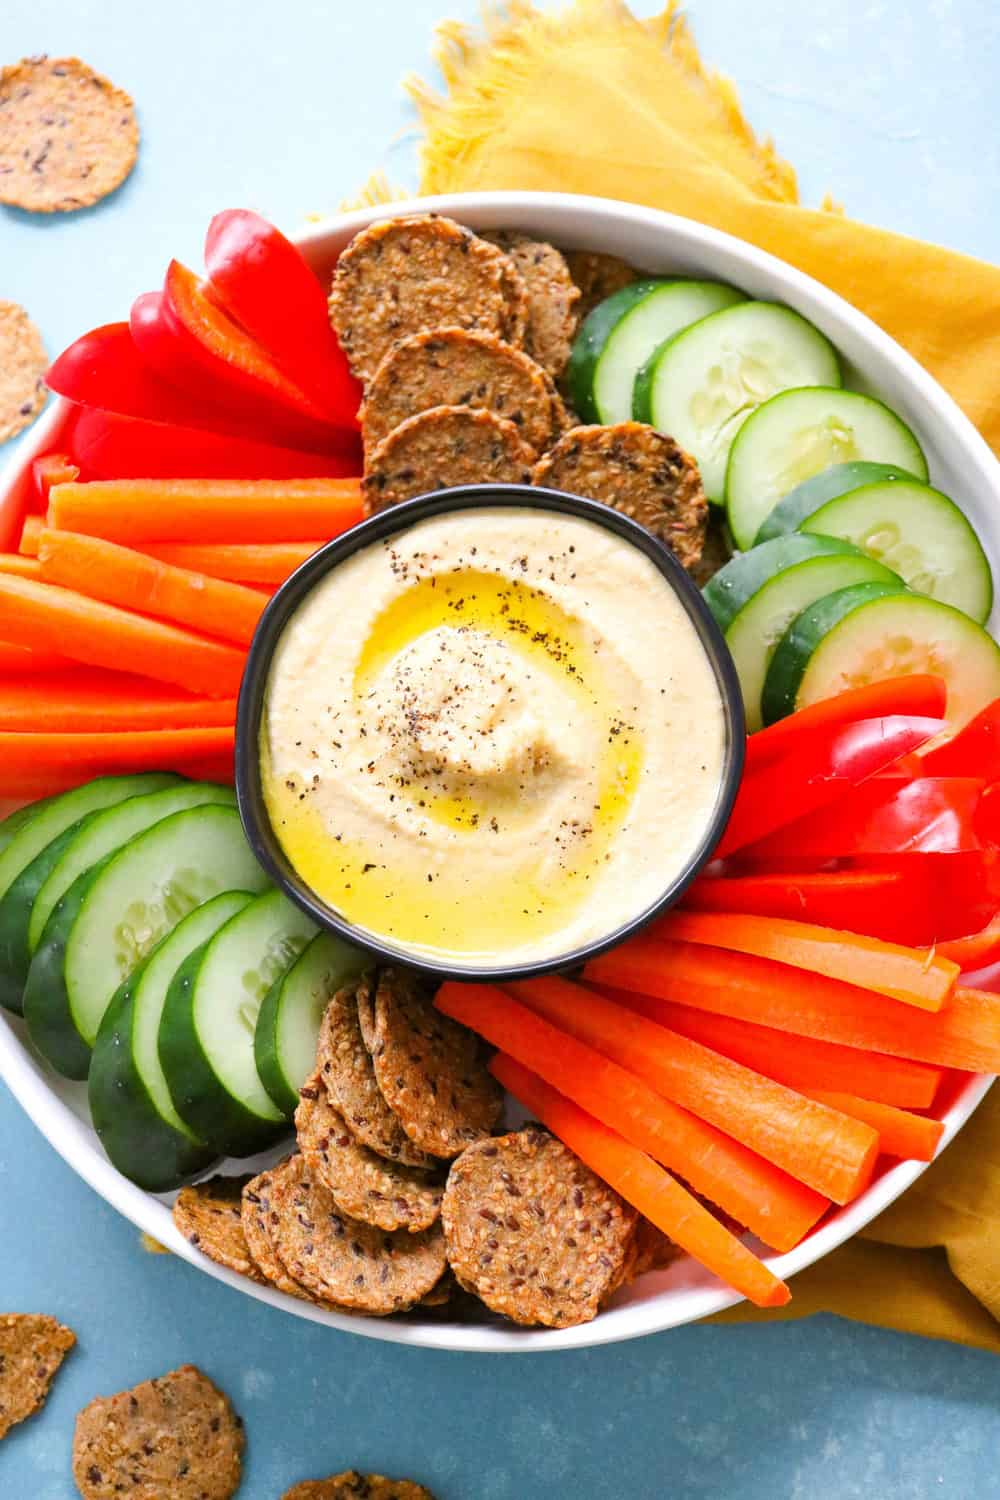 platter of humus and veggies